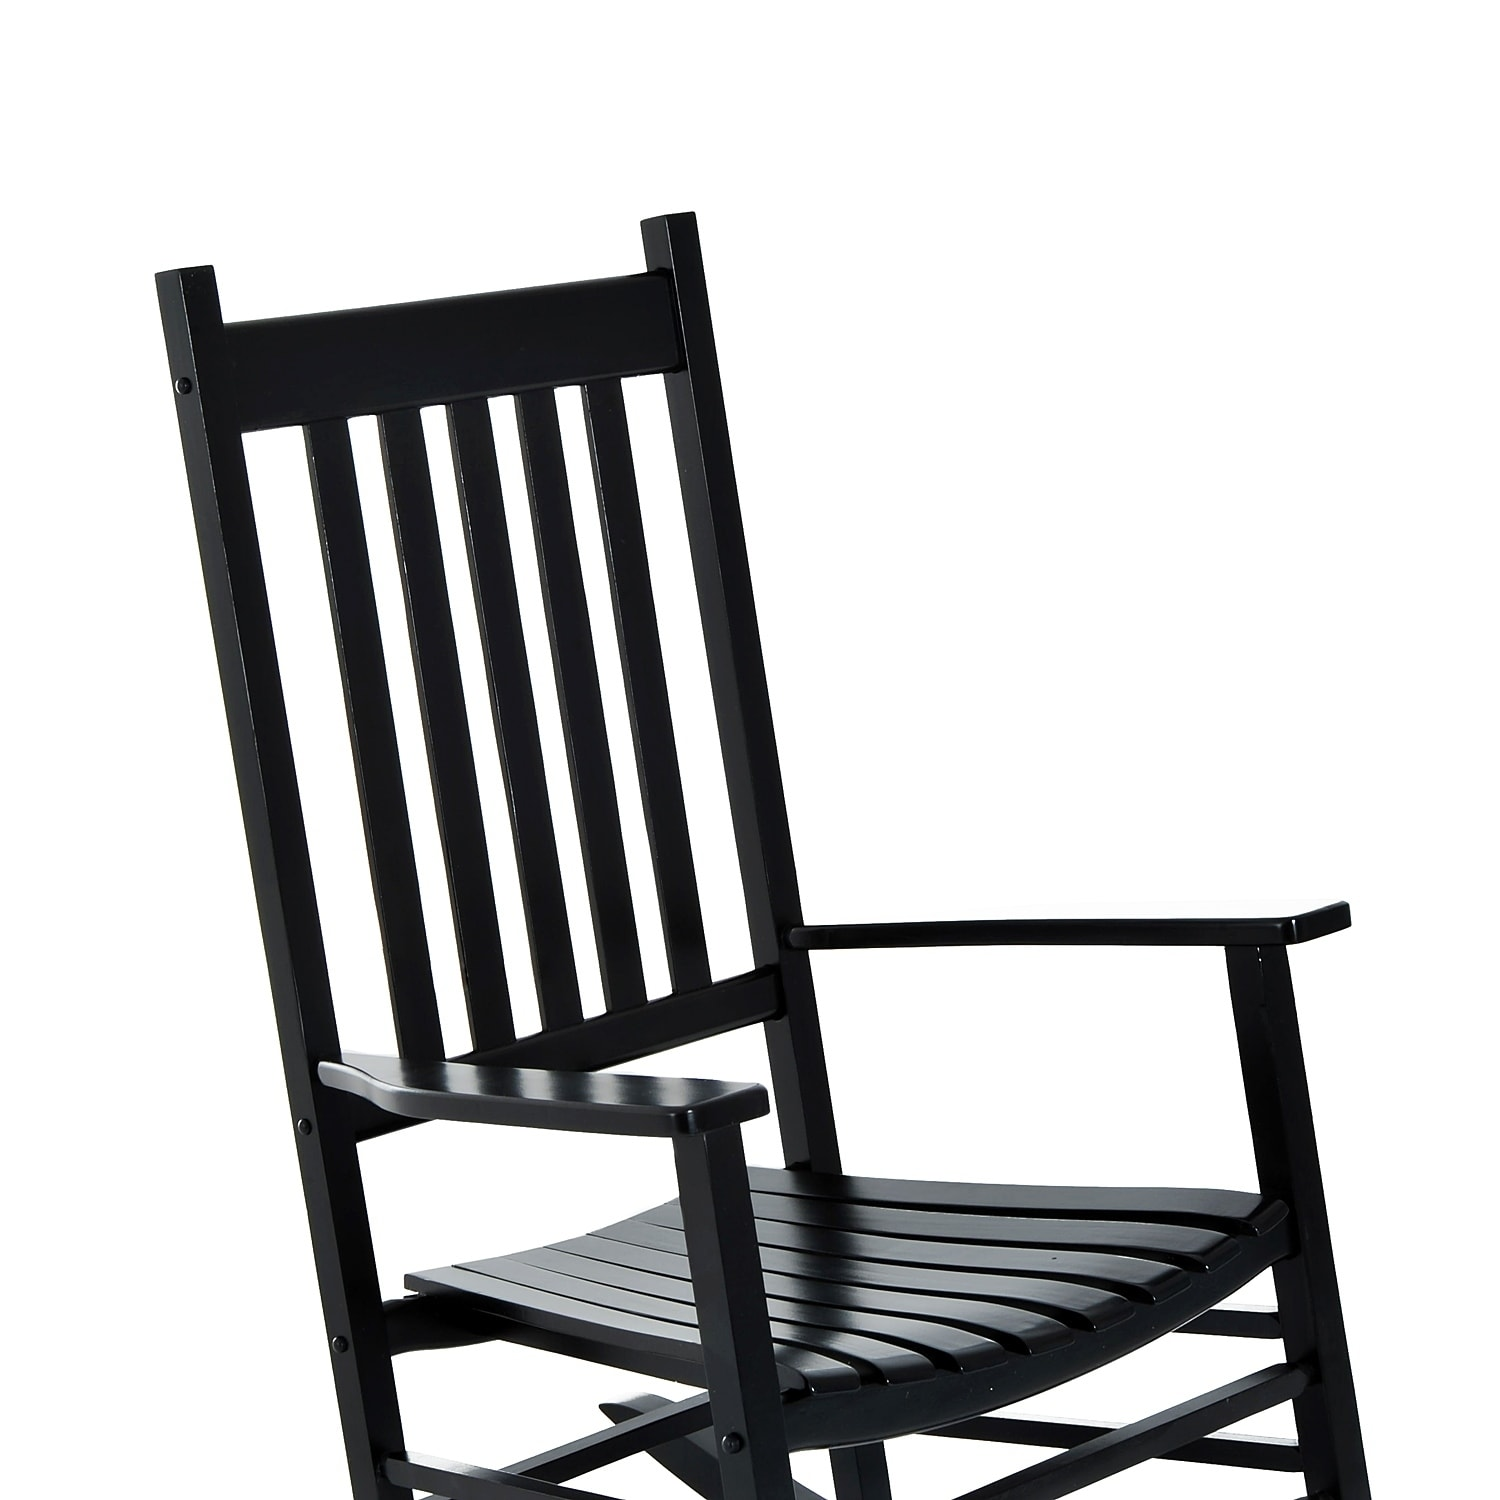 Outsunny Outdoor Porch Or Patio Wooden Rocking Chair Free Shipping Today 18013202